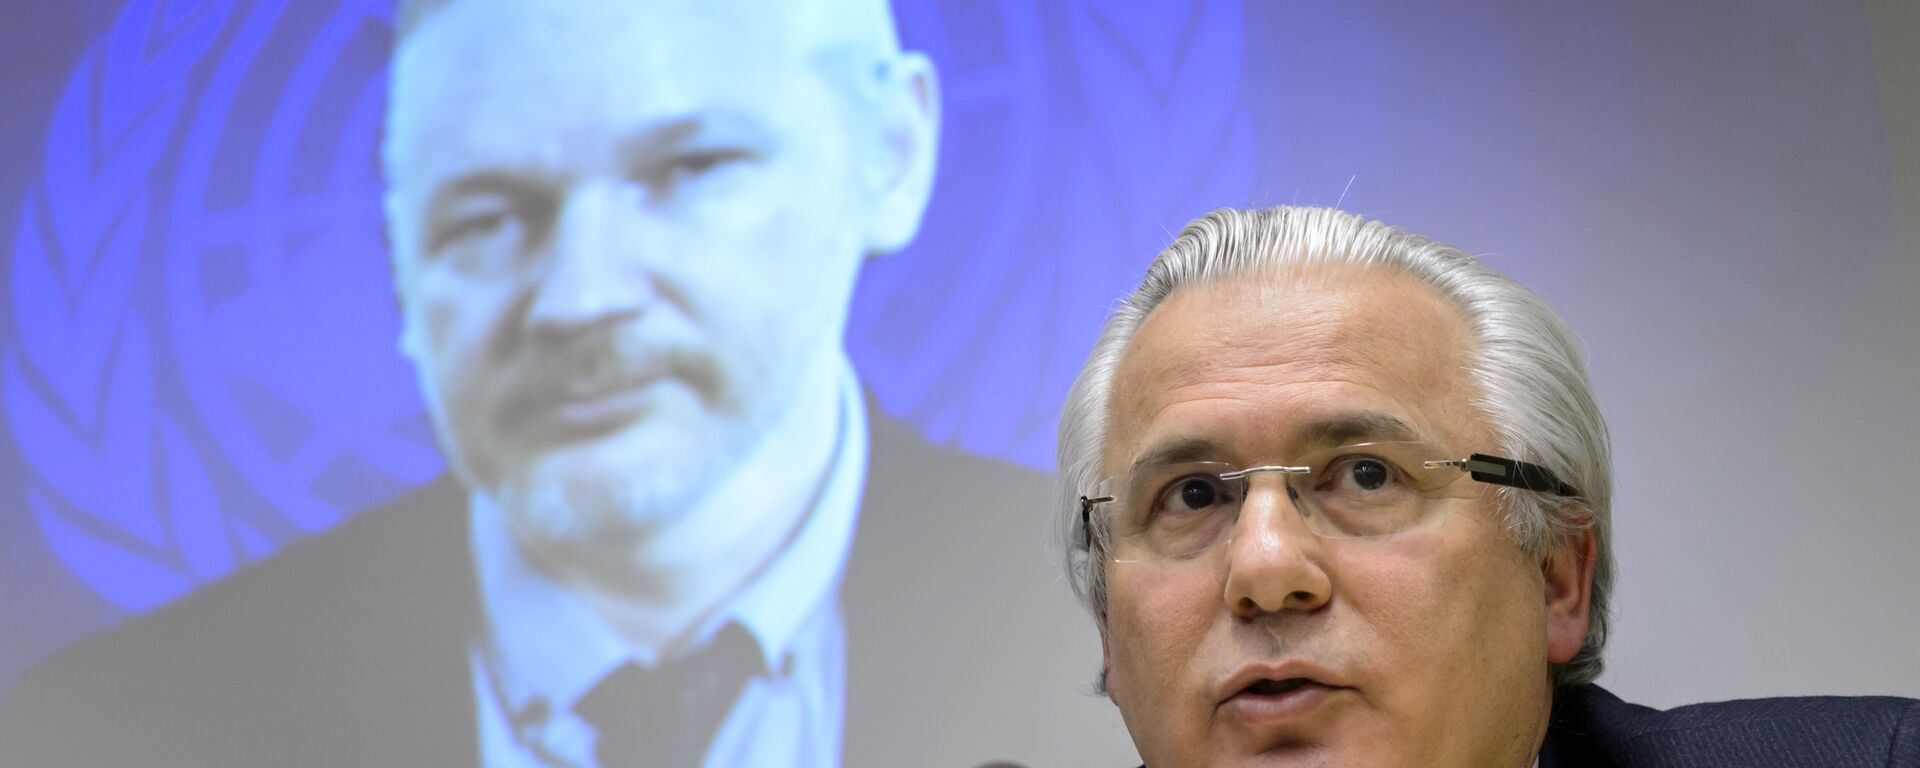 Spanish former judge Baltasar Garzon (R) speaks beneath WikiLeaks founder Julian Assange seen on a screen via web cast from the Ecuadorian Embassy in London during an event on the sideline of the United Nations (UN) Human Rights Council session on March 23, 2015 in Geneva. - Sputnik Mundo, 1920, 23.07.2021